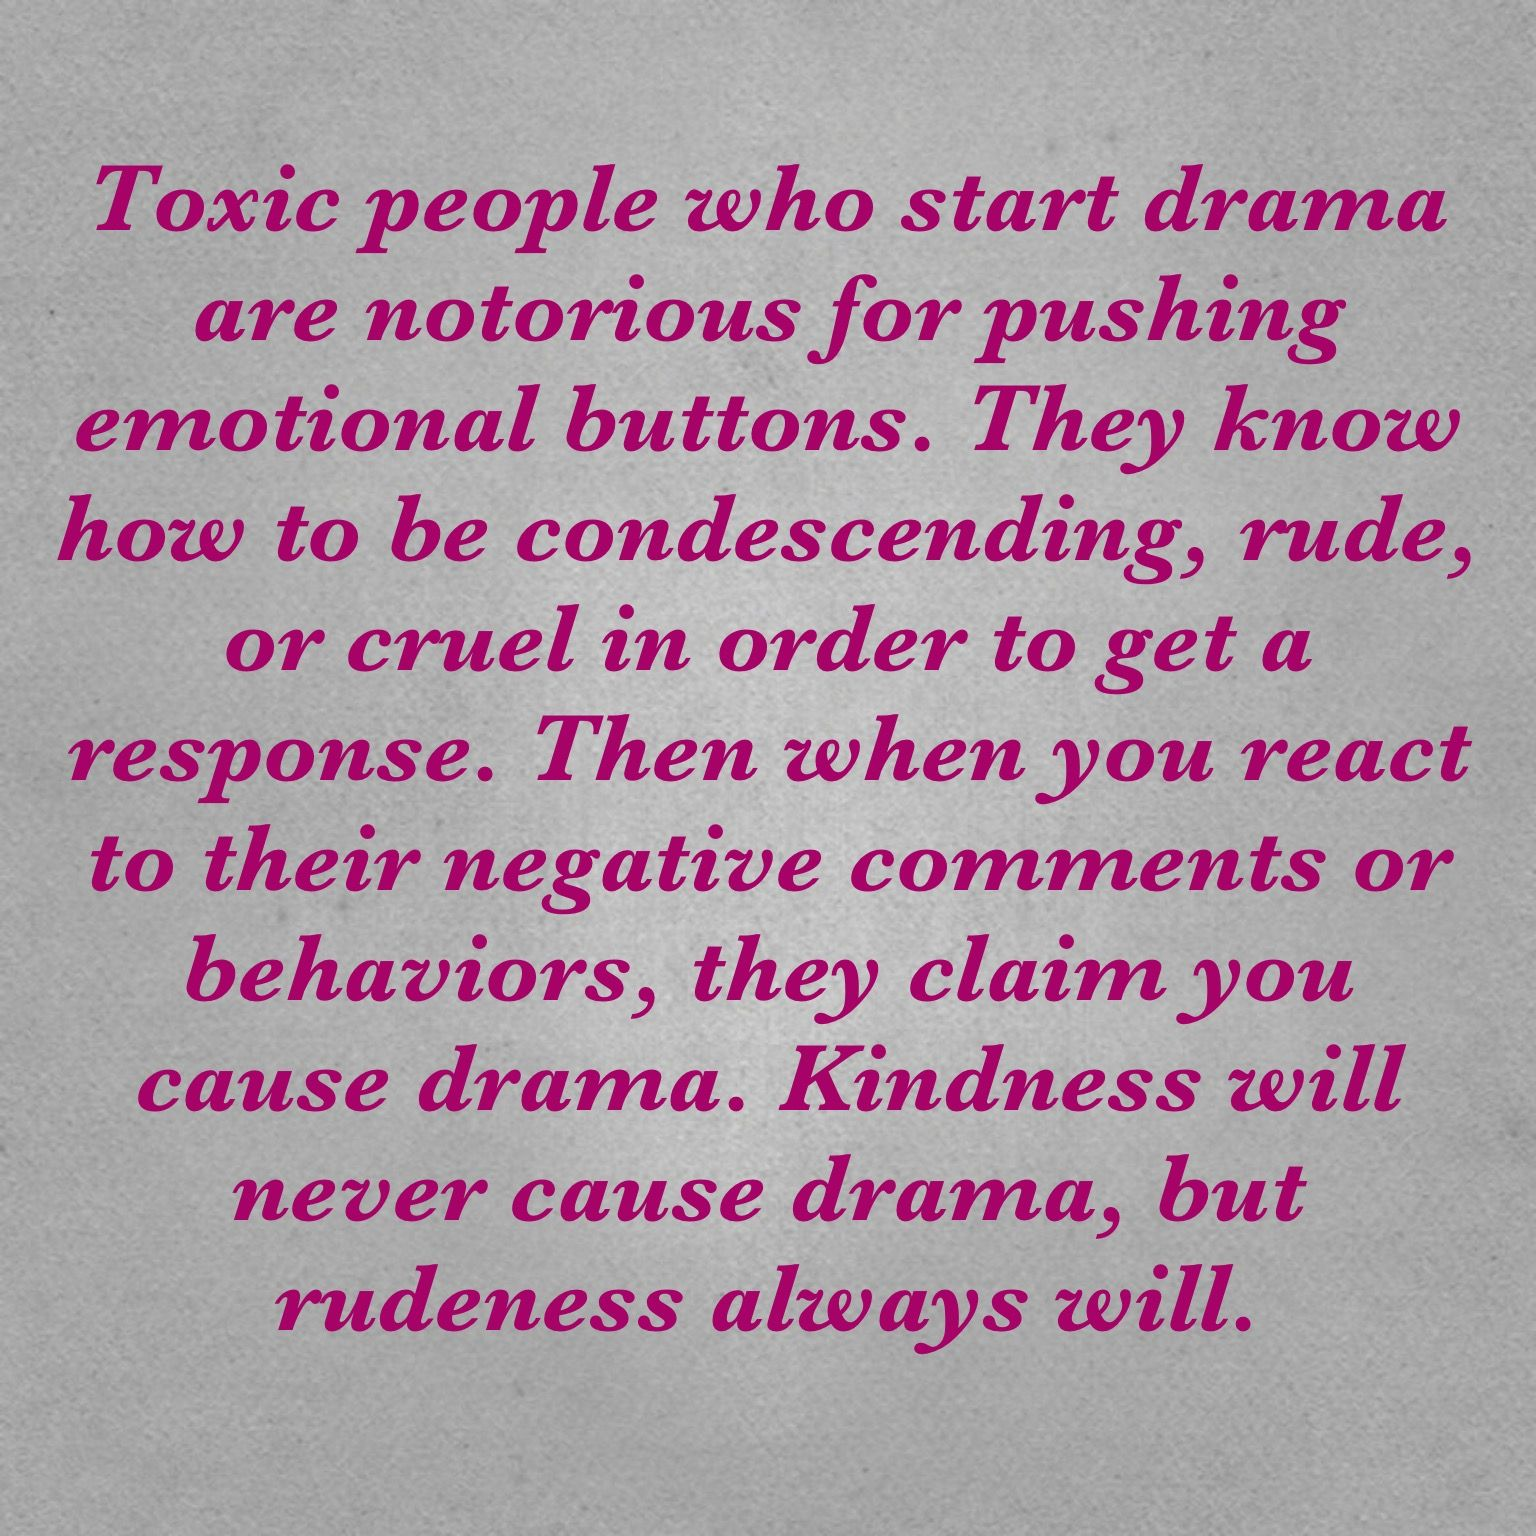 rude people people who insult or who are just plain mean